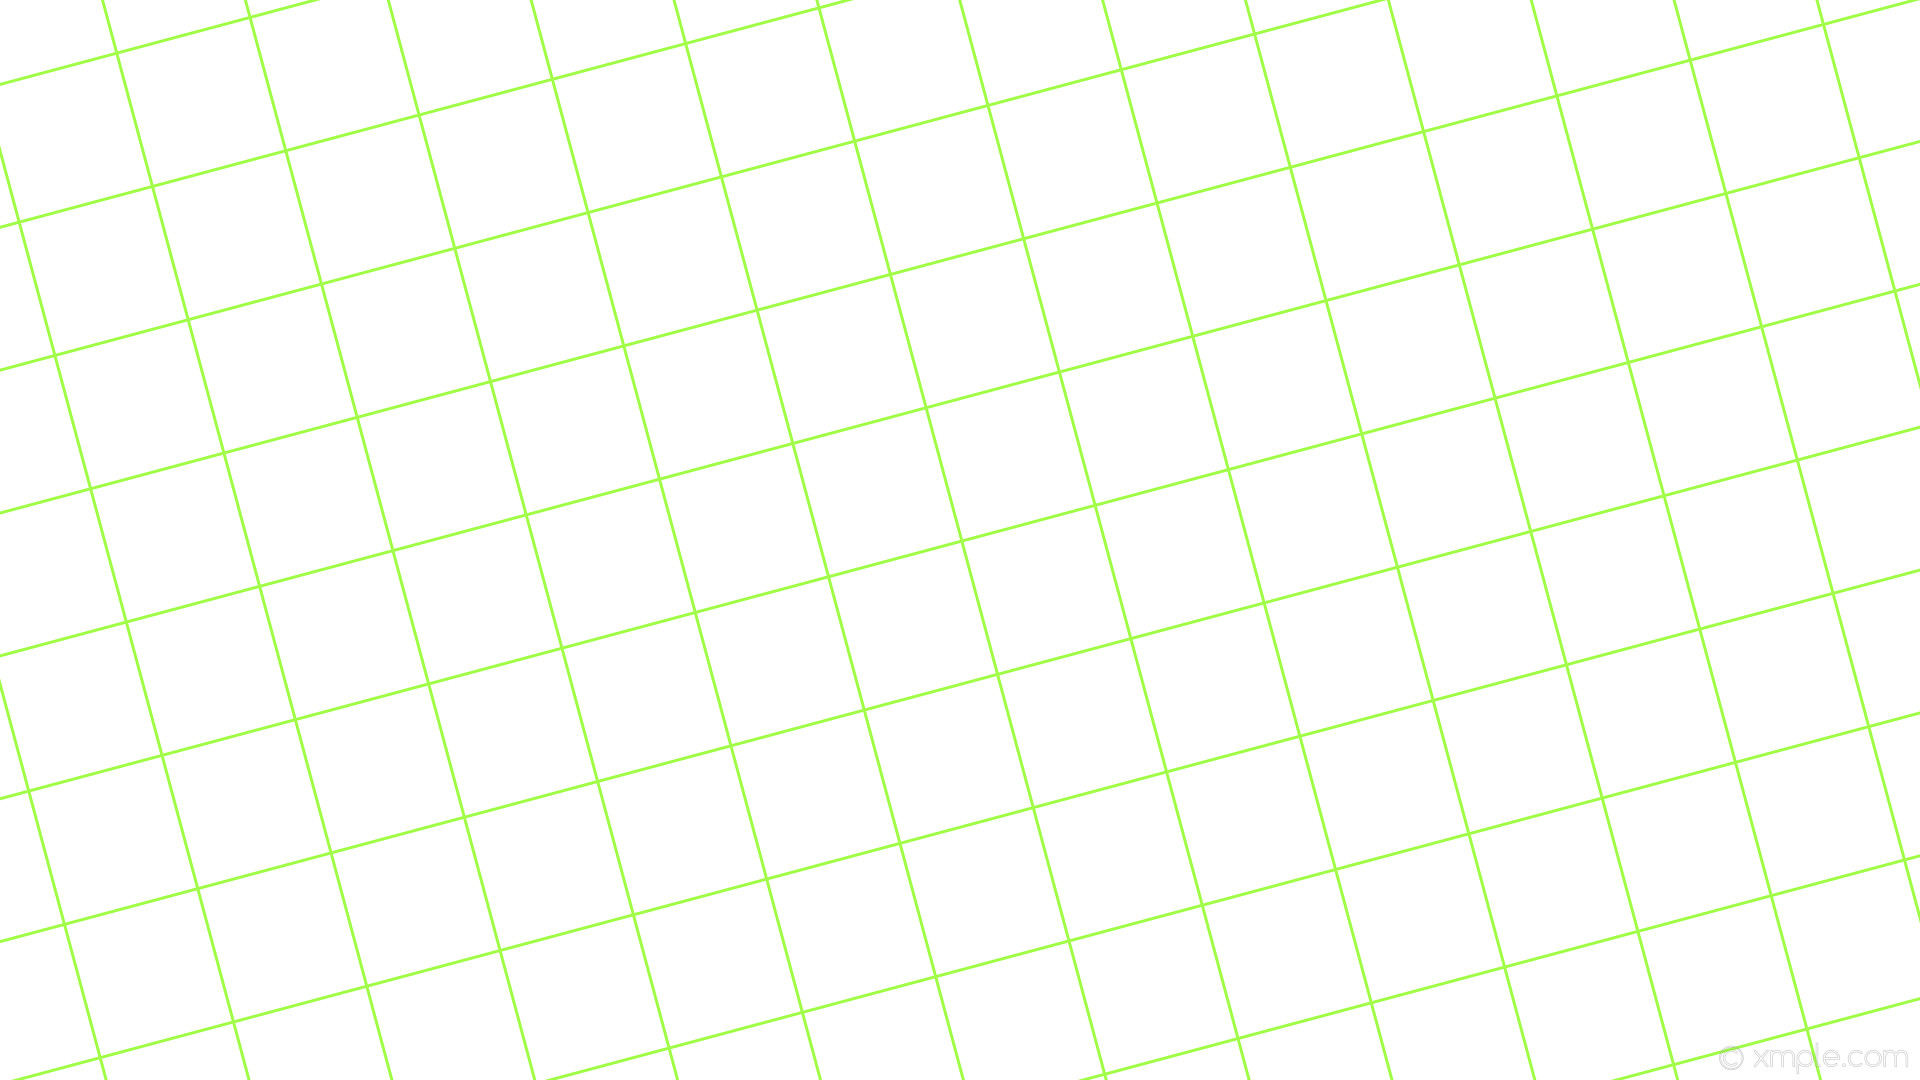 1920x1080 wallpaper graph paper green white grid lawn green #ffffff #7cfc00 15° 3px  138px